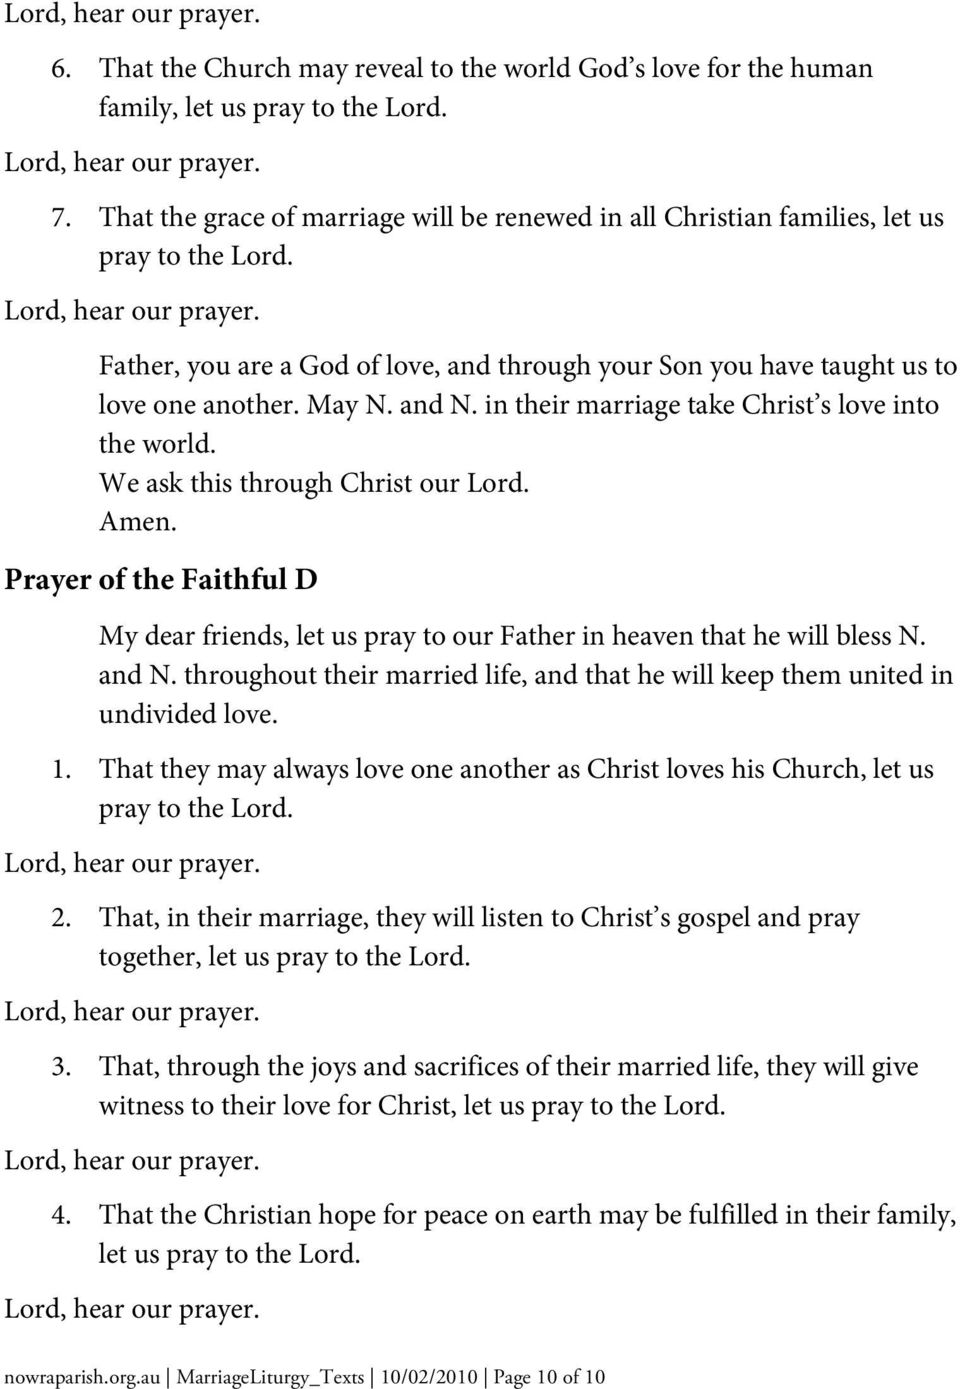 Prayer of the Faithful D My dear friends, let us pray to our Father in heaven that he will bless N. and N. throughout their married life, and that he will keep them united in undivided love. 1.